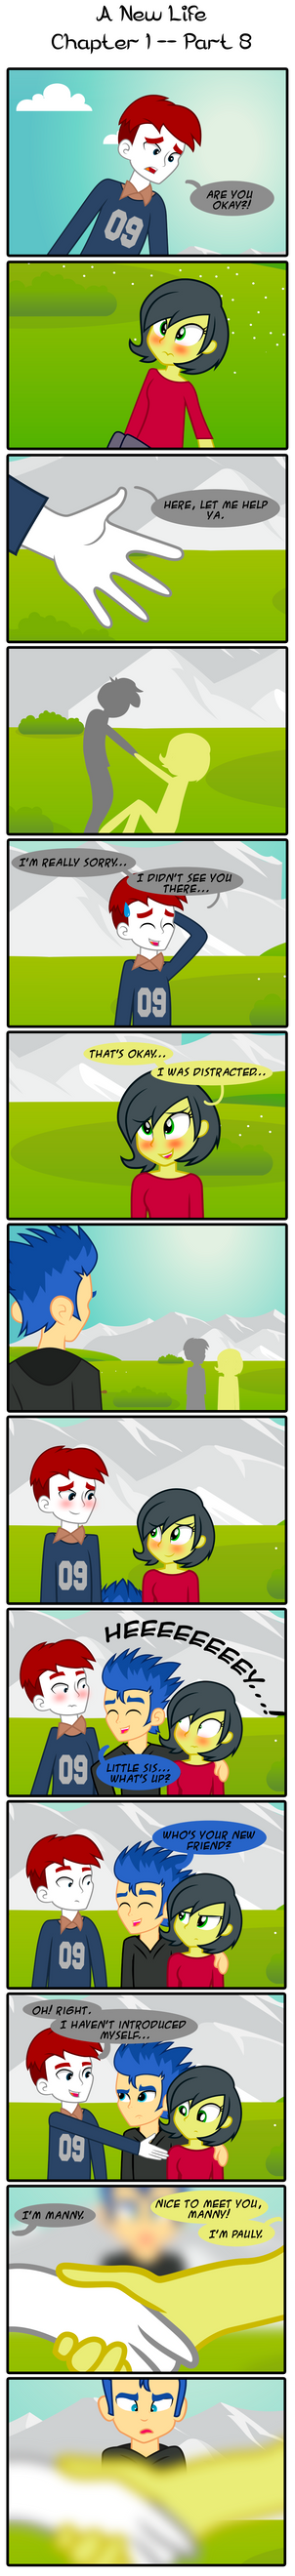 A New Life Part 8 by PaulySentry